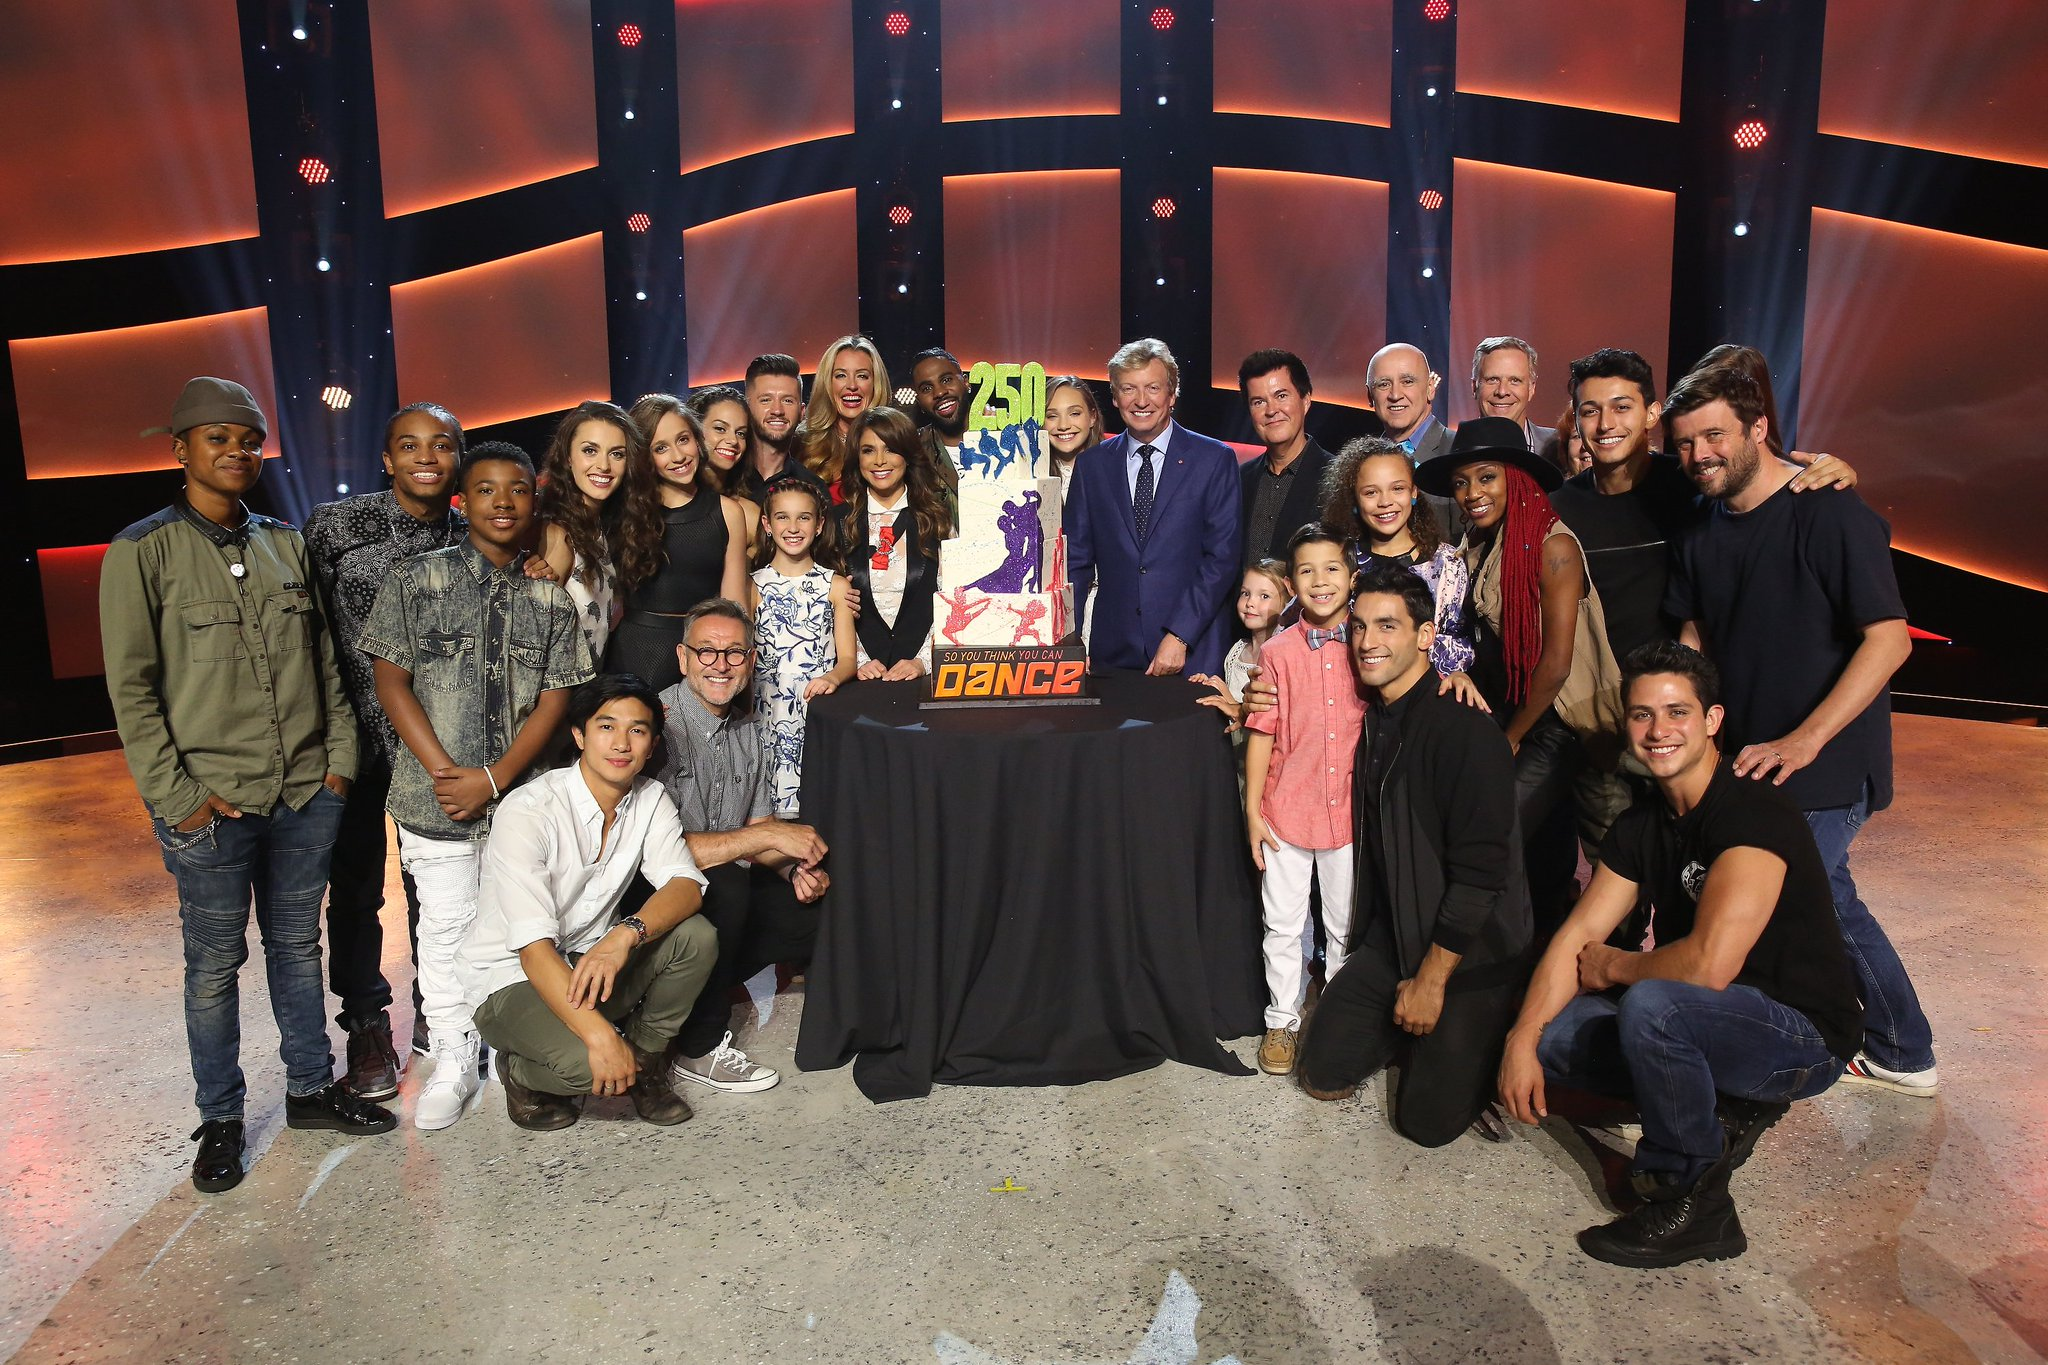 RT @DANCEonFOX: RETWEET if you loved the #SYTYCD250 celebration! ❤️ https://t.co/8TXDIho9tT